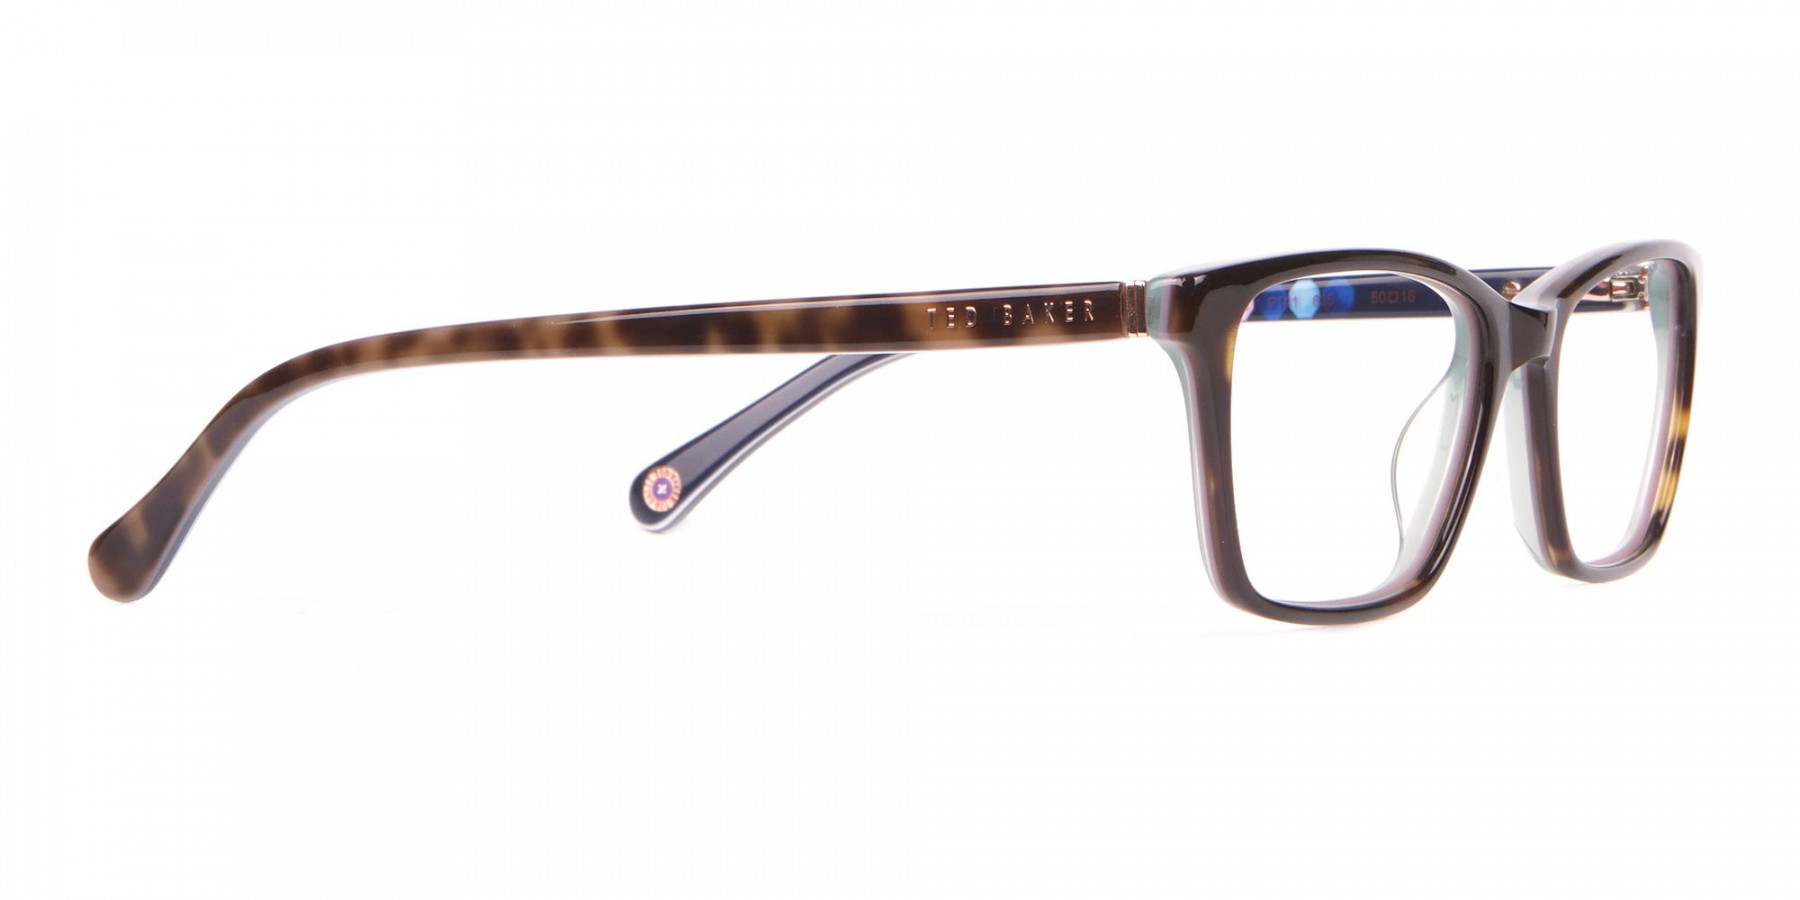 Ted Baker TB9141 Thea Blue & Tortoise Rectangular Glasses -1